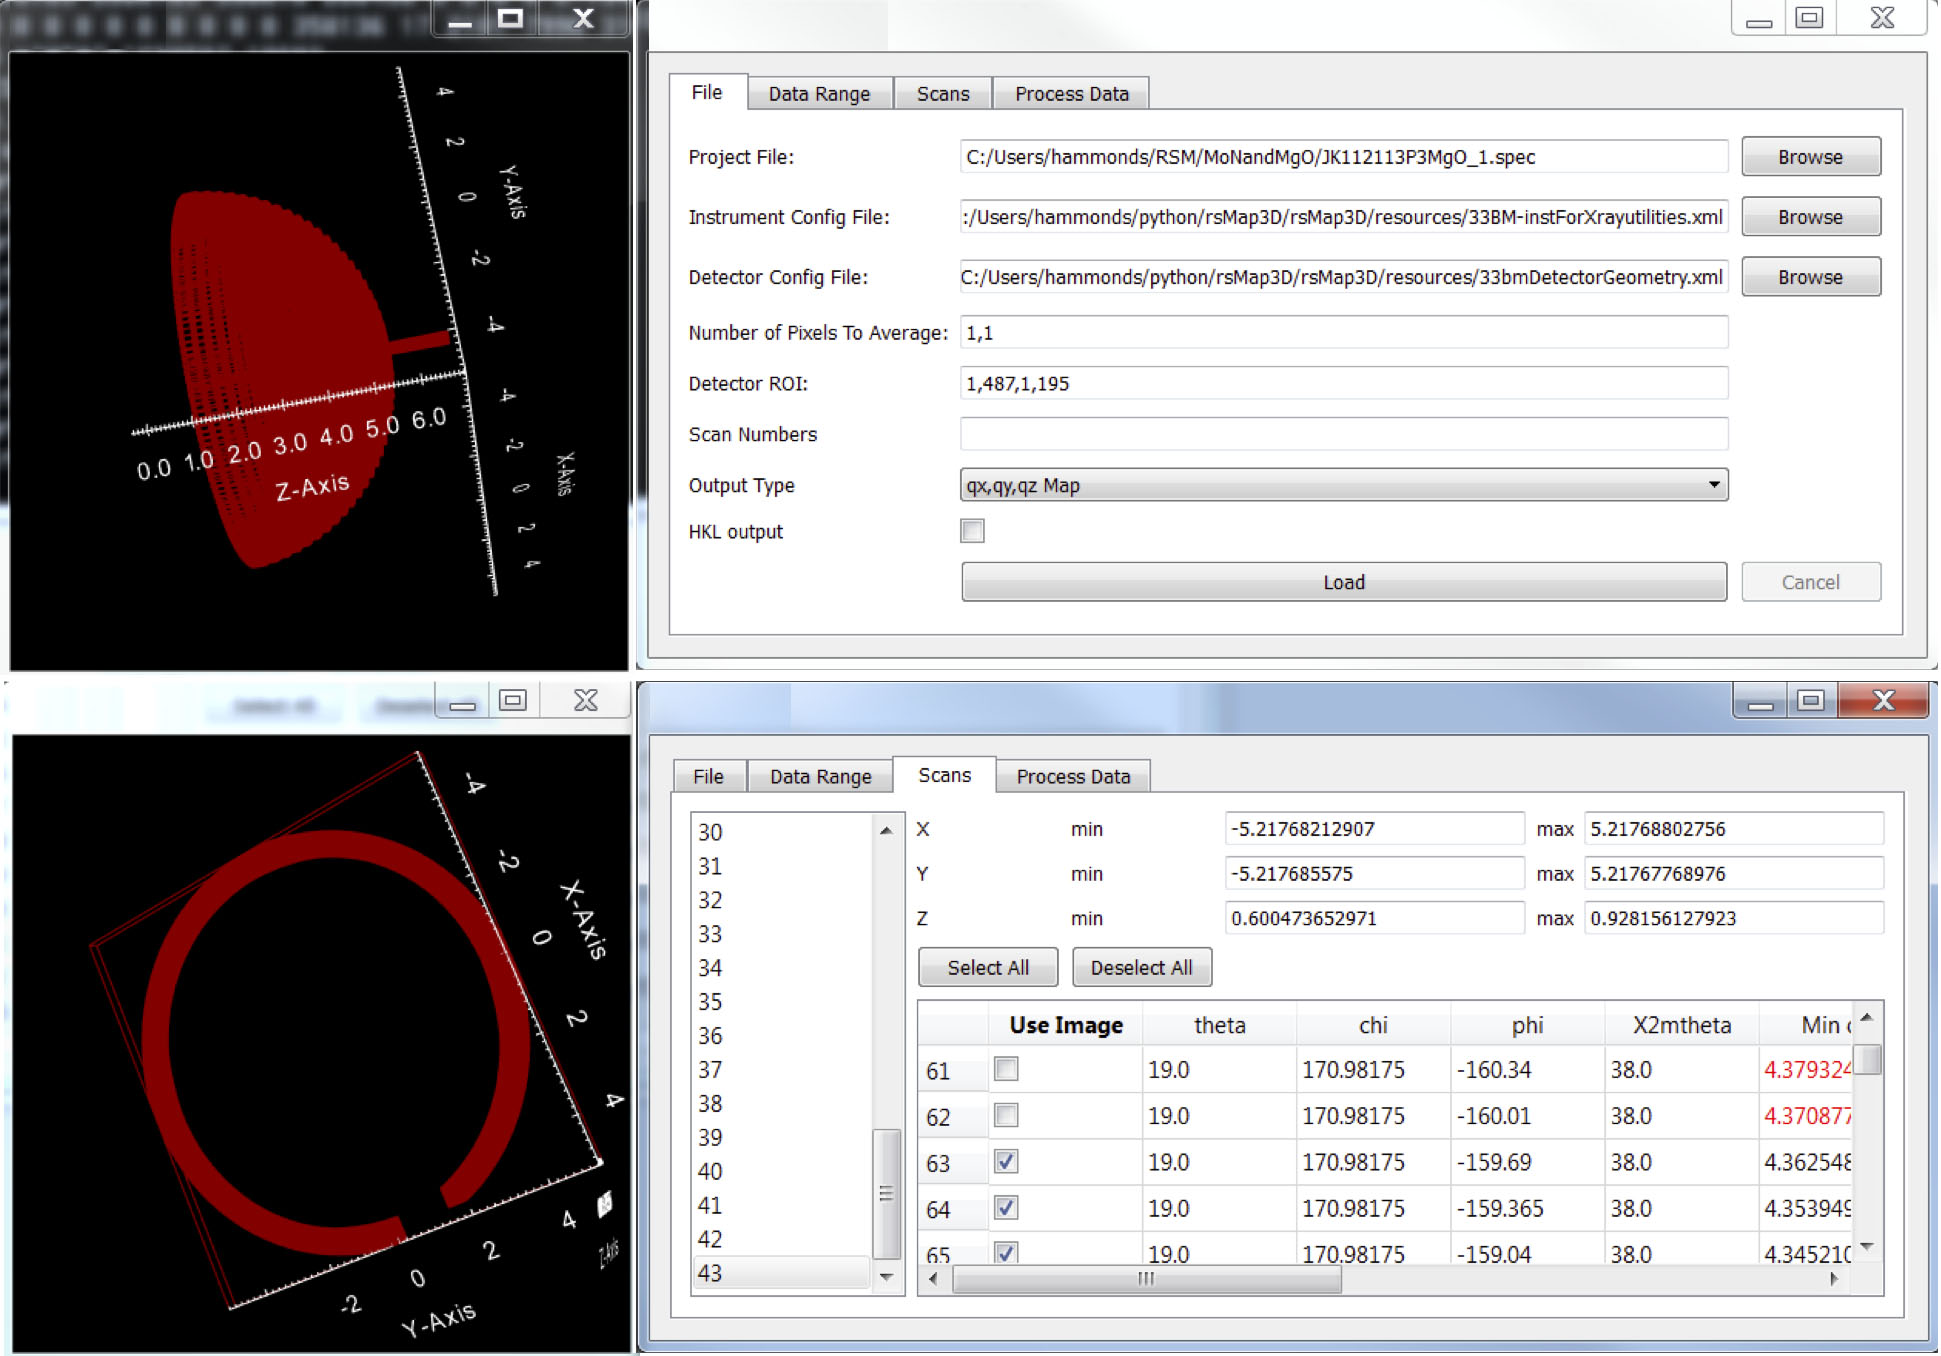 Fig. 1. RSMap3D user interface. Top: Interactive view of the full scan space imported from acquisition data given in the dialog to the right. Via the interface users select scan geometry and image files, and instrument configuration settings. Bottom: View